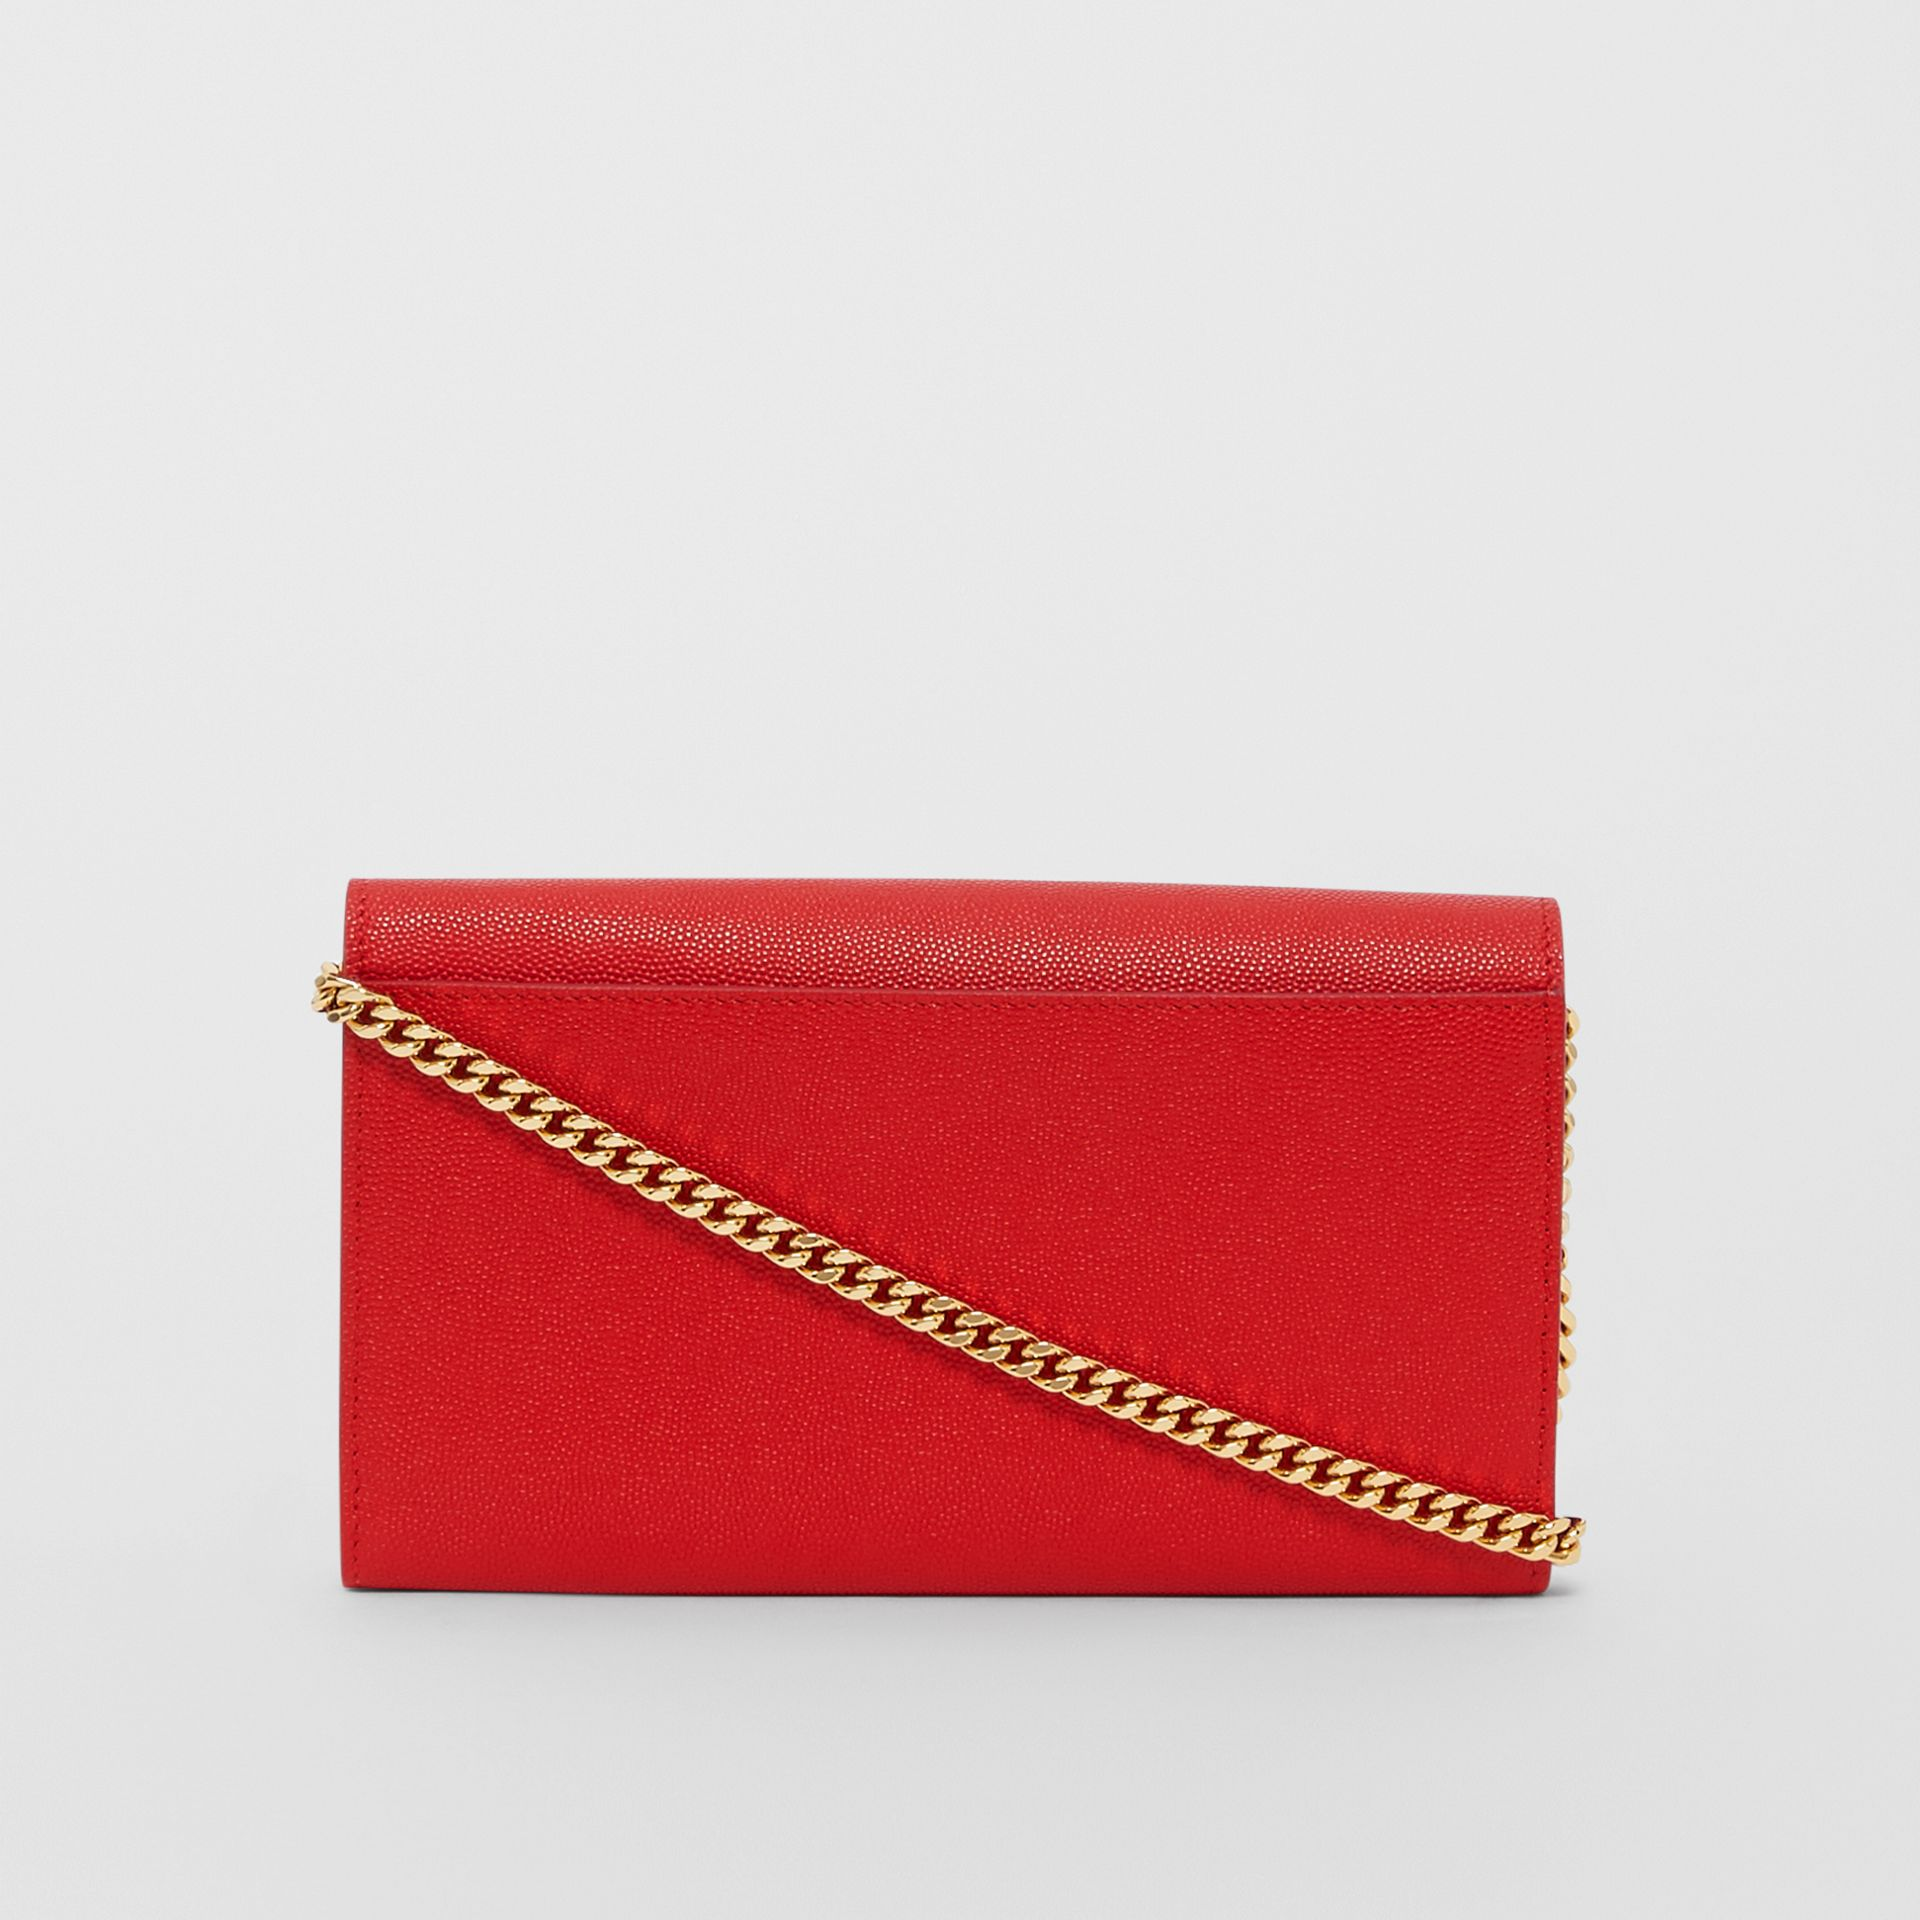 Monogram Motif Leather Wallet with Detachable Strap in Bright Red - Women | Burberry Hong Kong S.A.R - gallery image 5